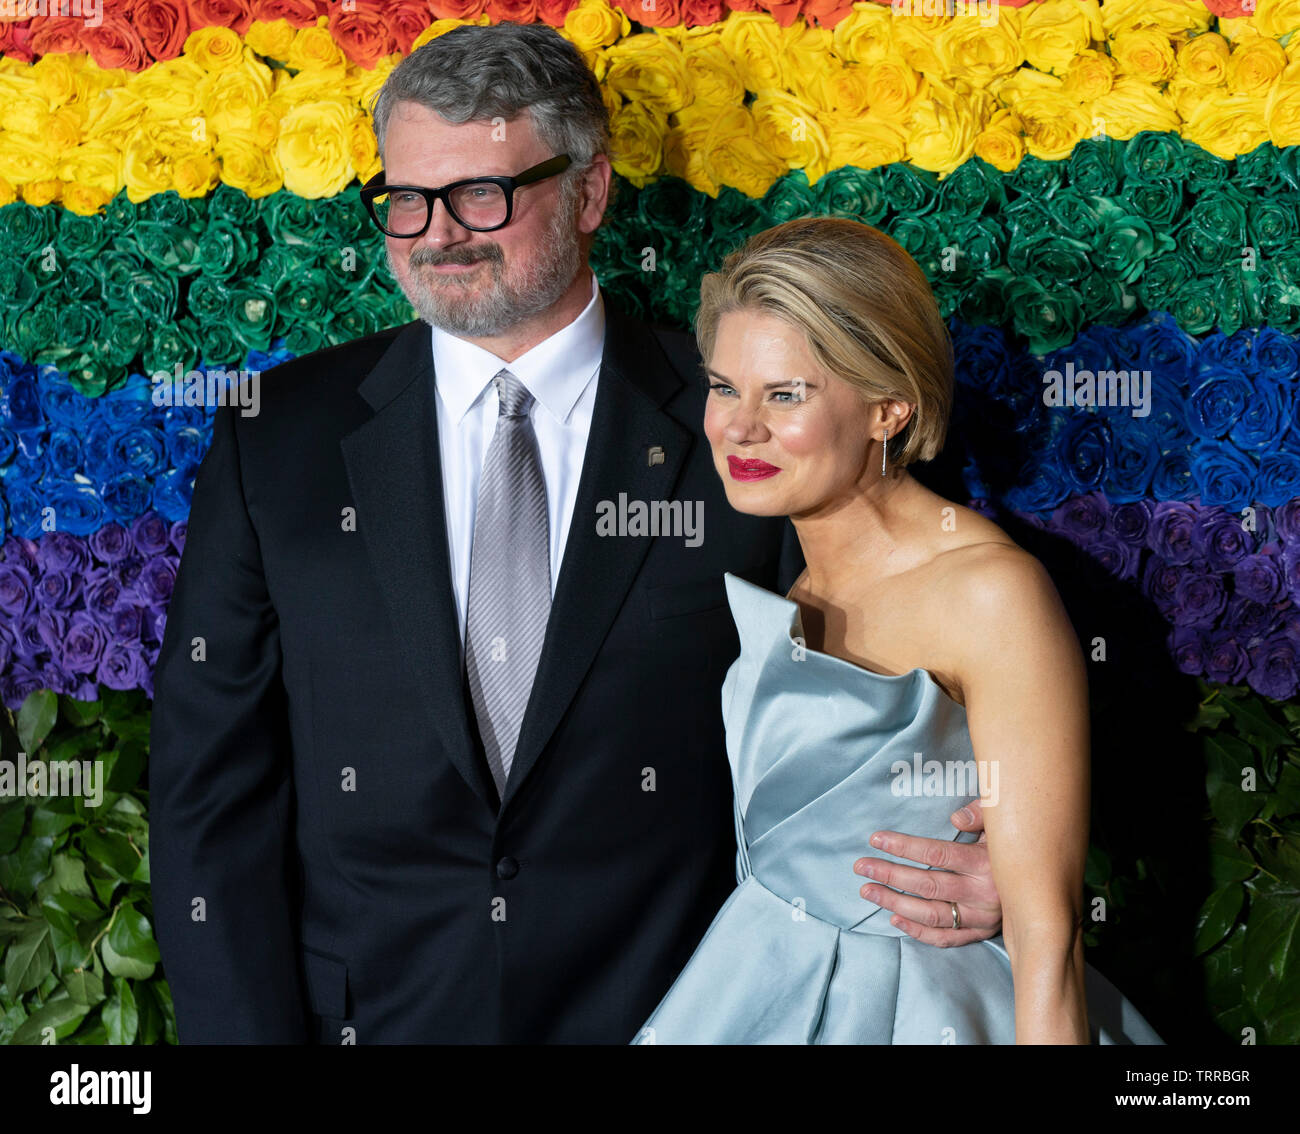 New York, NY - June 9, 2019: John Ellison Conlee and Celia Keenan-Bolger attend the 73rd annual Tony Awards at Radio City Music Hall - Stock Image